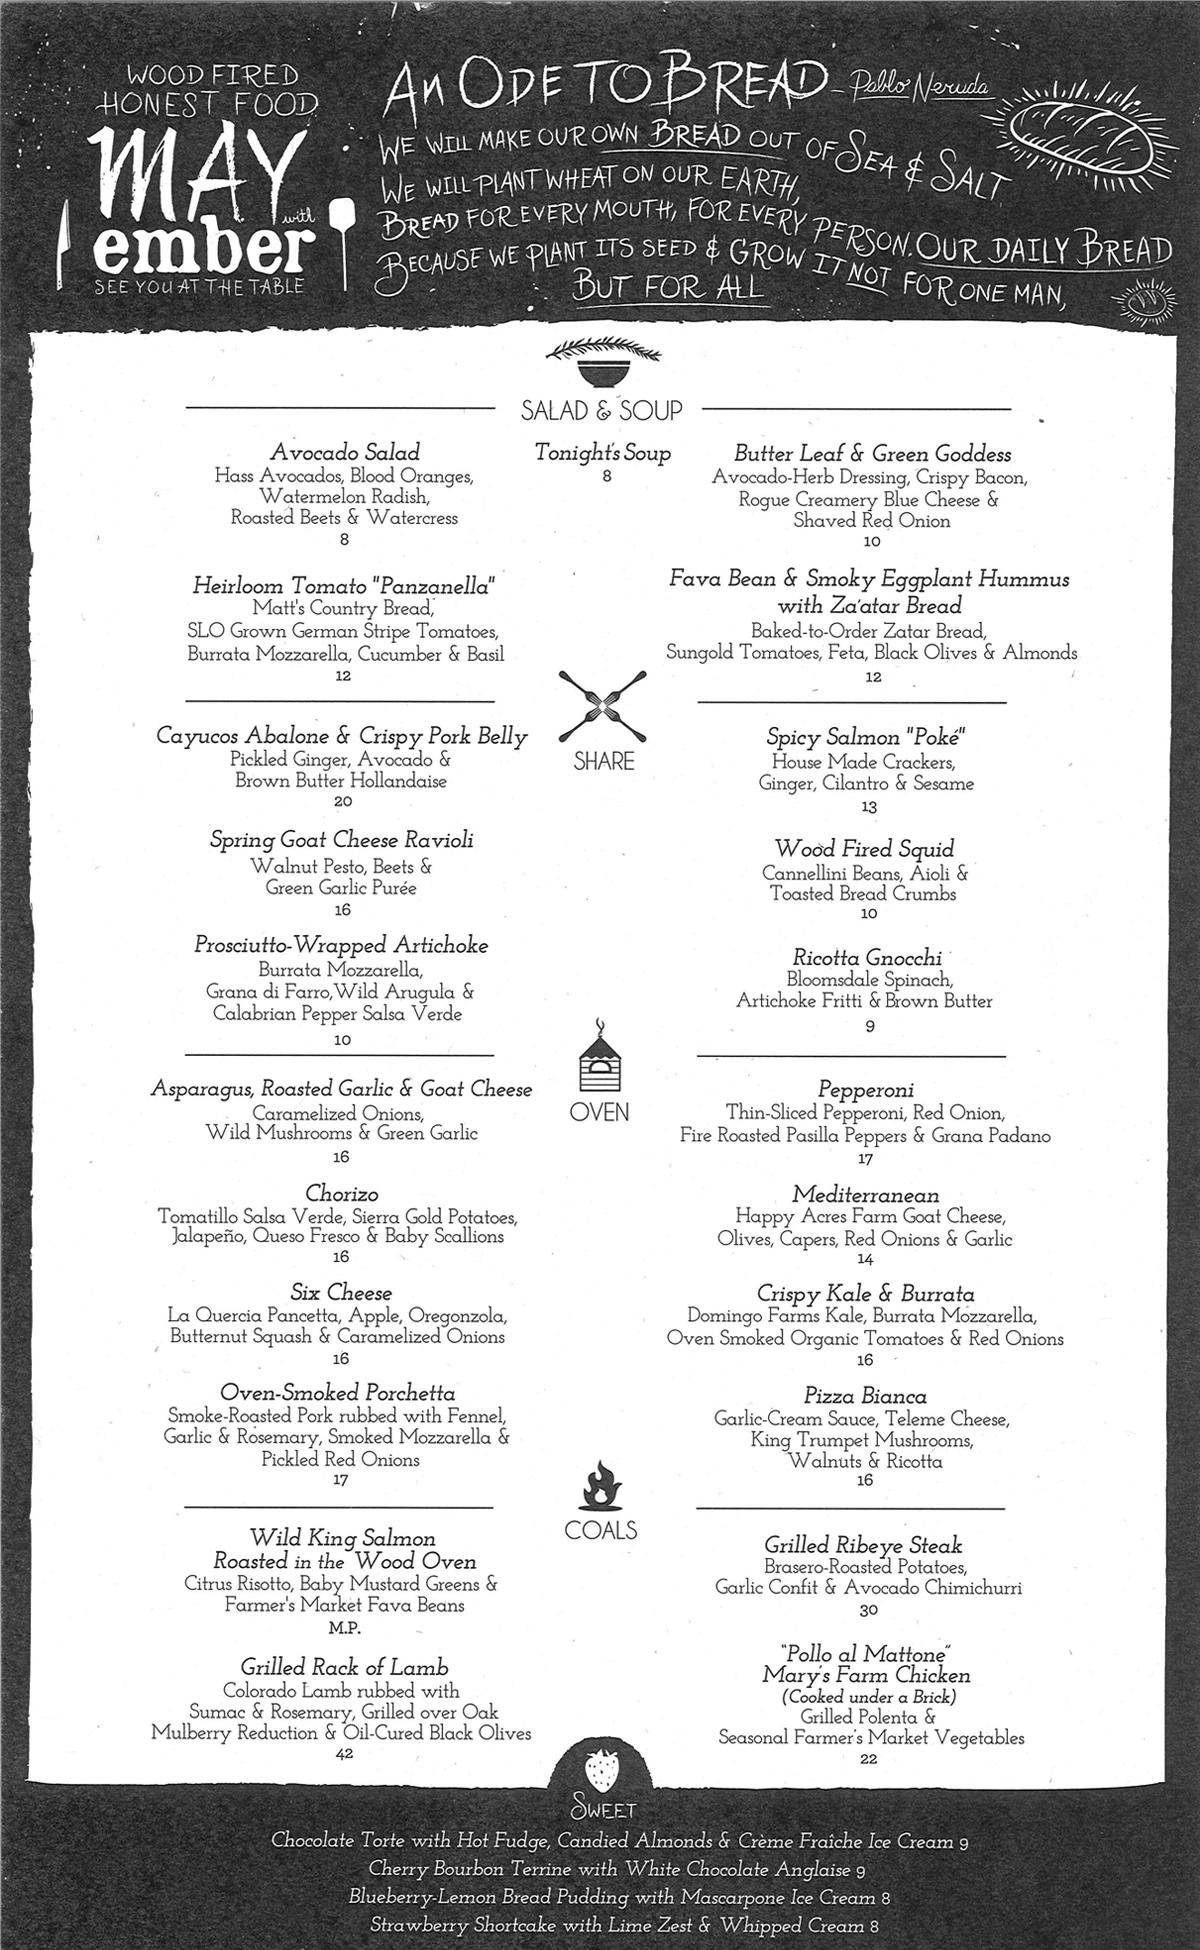 ember-restaurant-arroyo-grande-may-menu